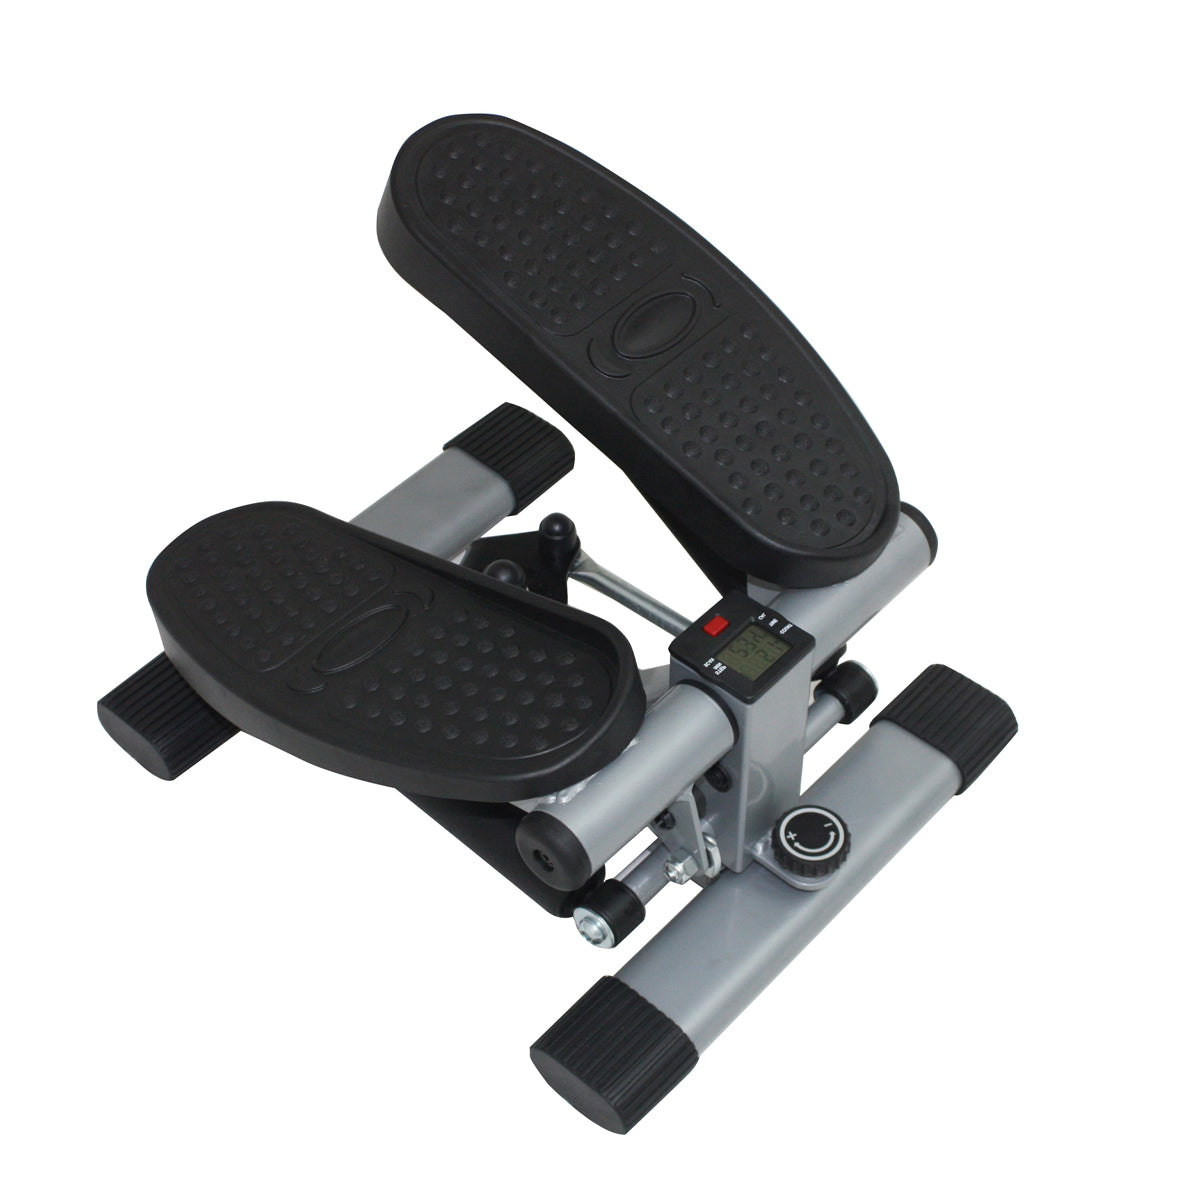 sunny-health-fitness-steppers-dual-action-swivel-stepper-SF-S1402-twist-action